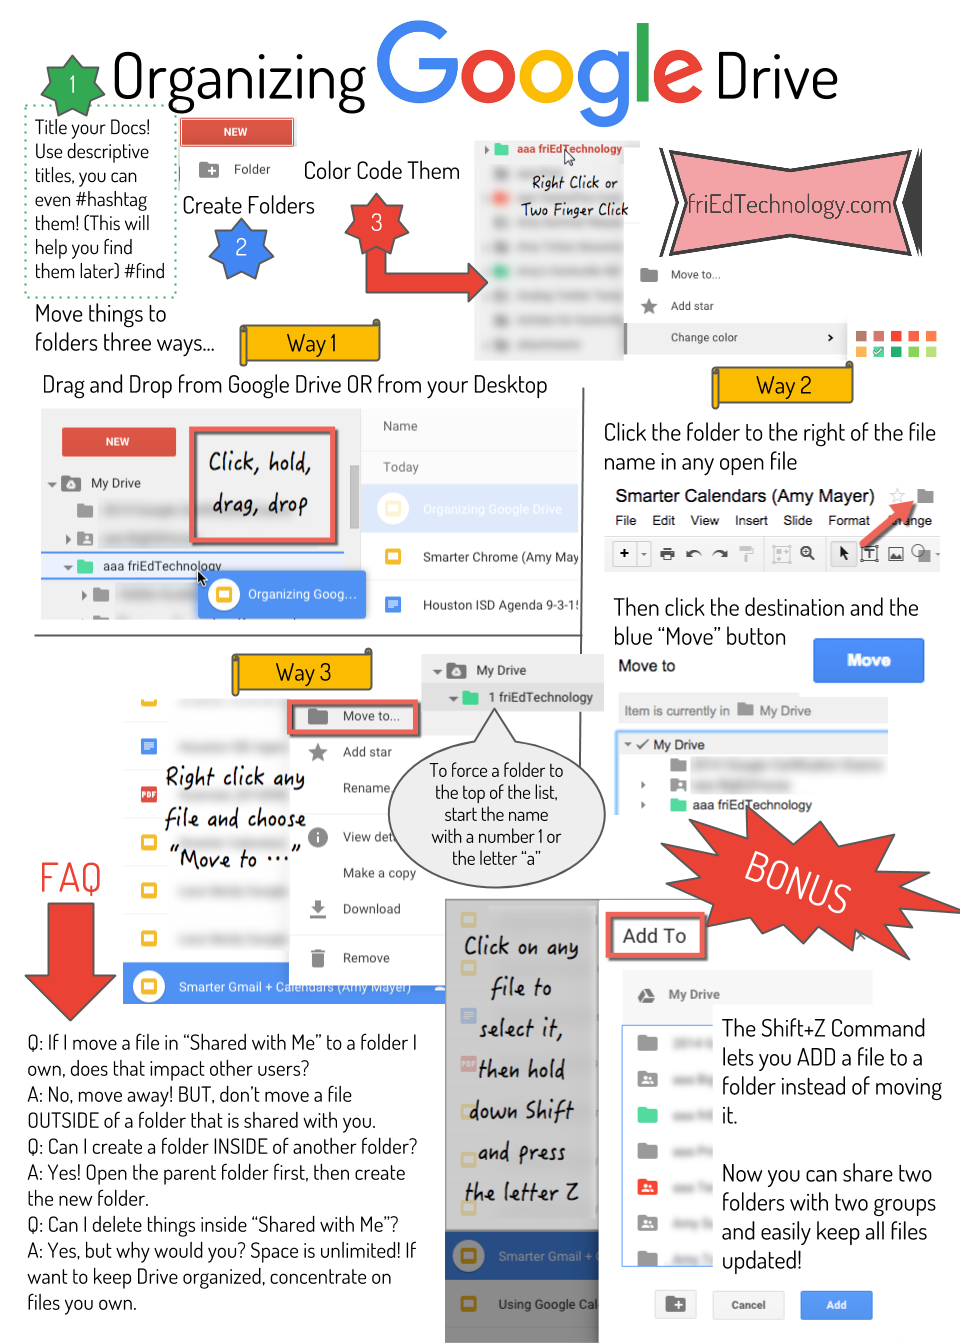 Figuring out how to keep Google Drive organized seems to